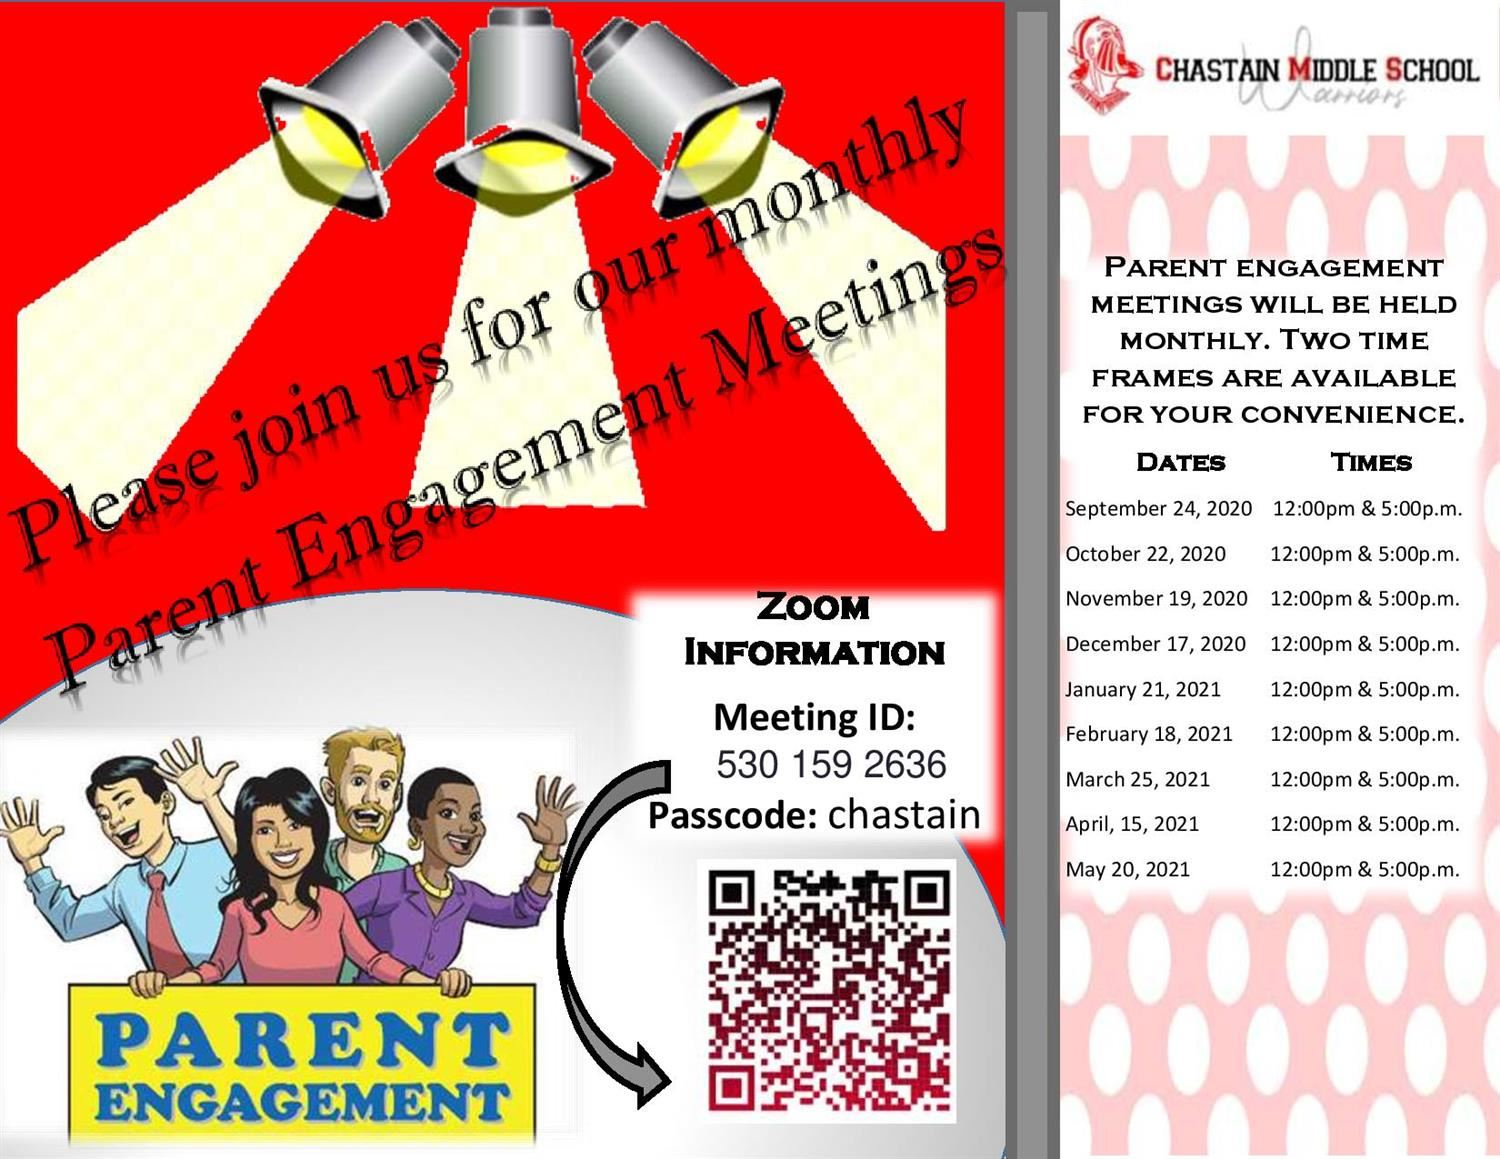 Parent Engagement Meetings